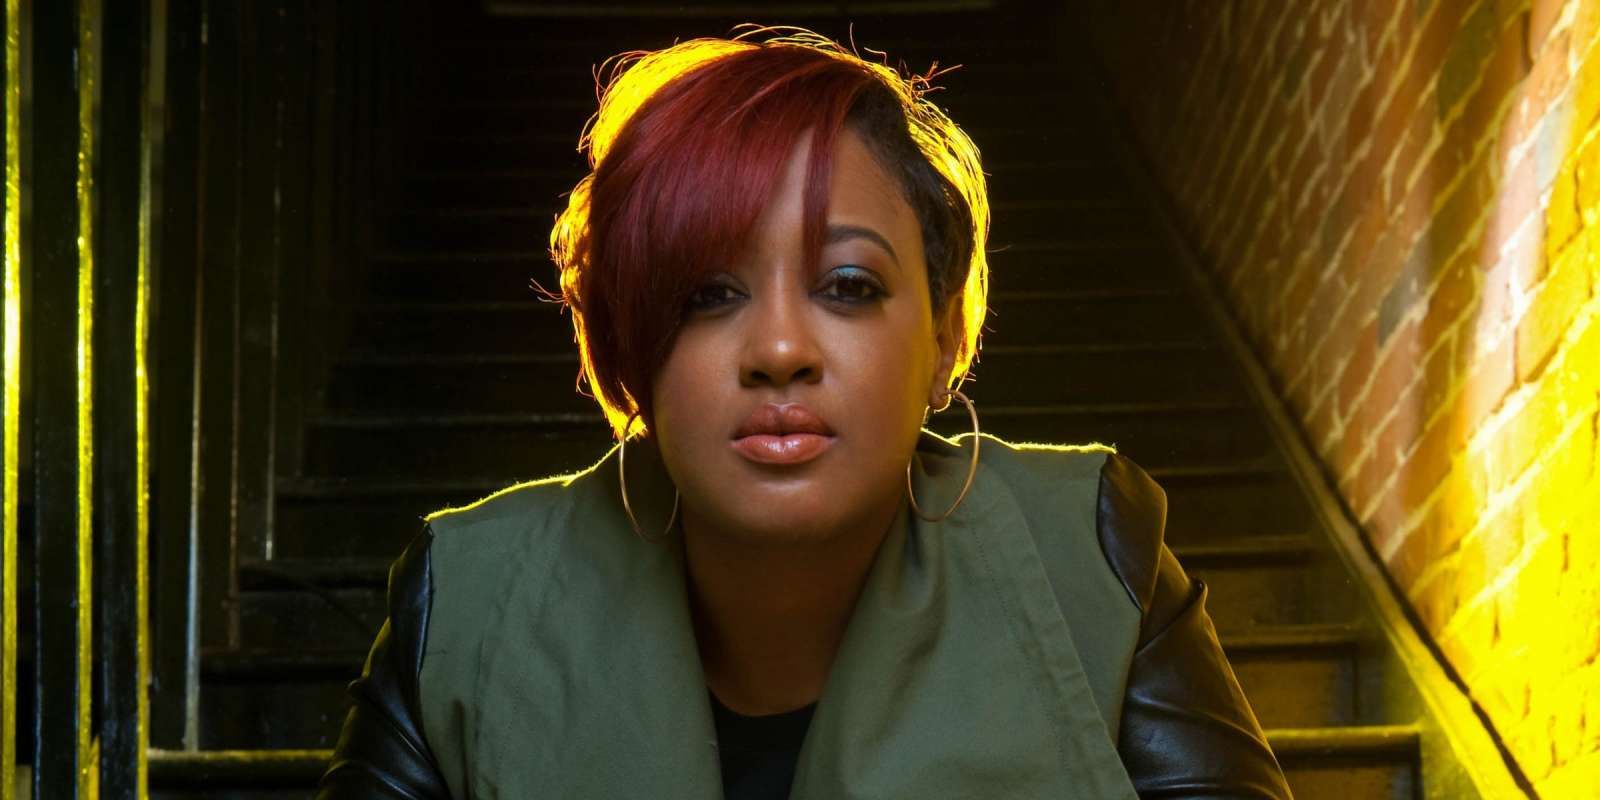 Rapsody website images for profile